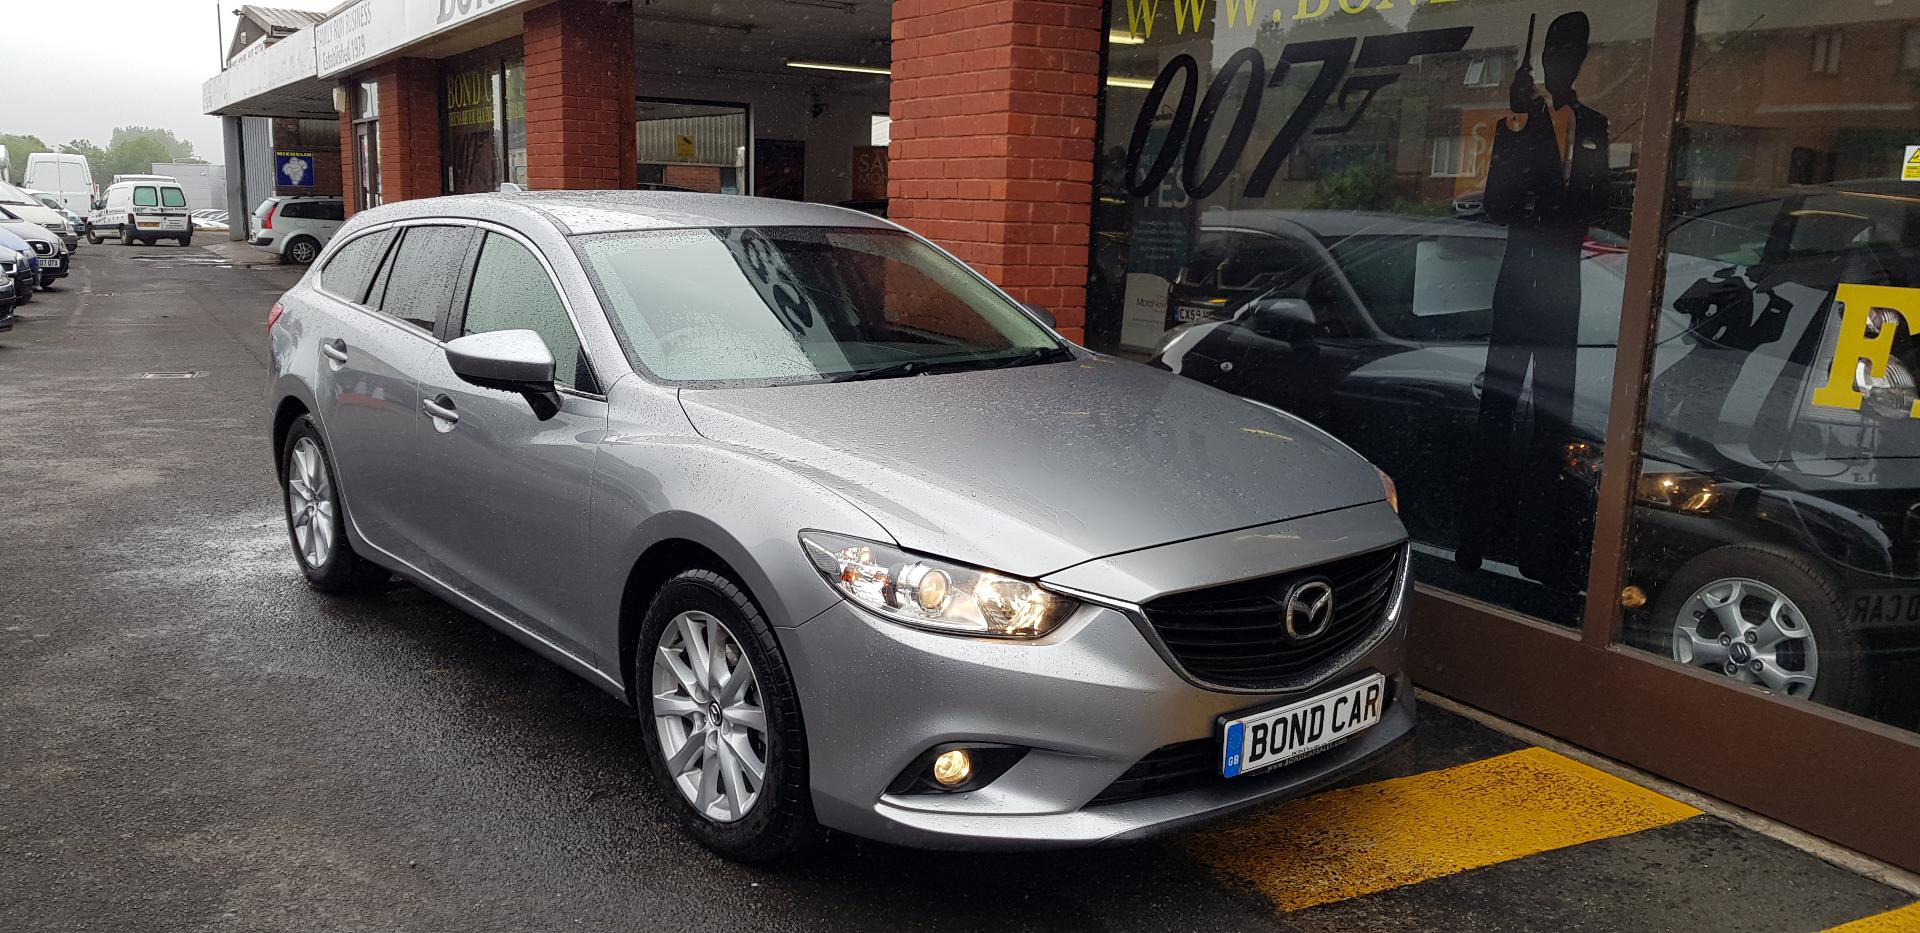 2013 (63) Mazda 6 2.2d SE Nav £30 Tax For Sale In Swansea, Glamorgan